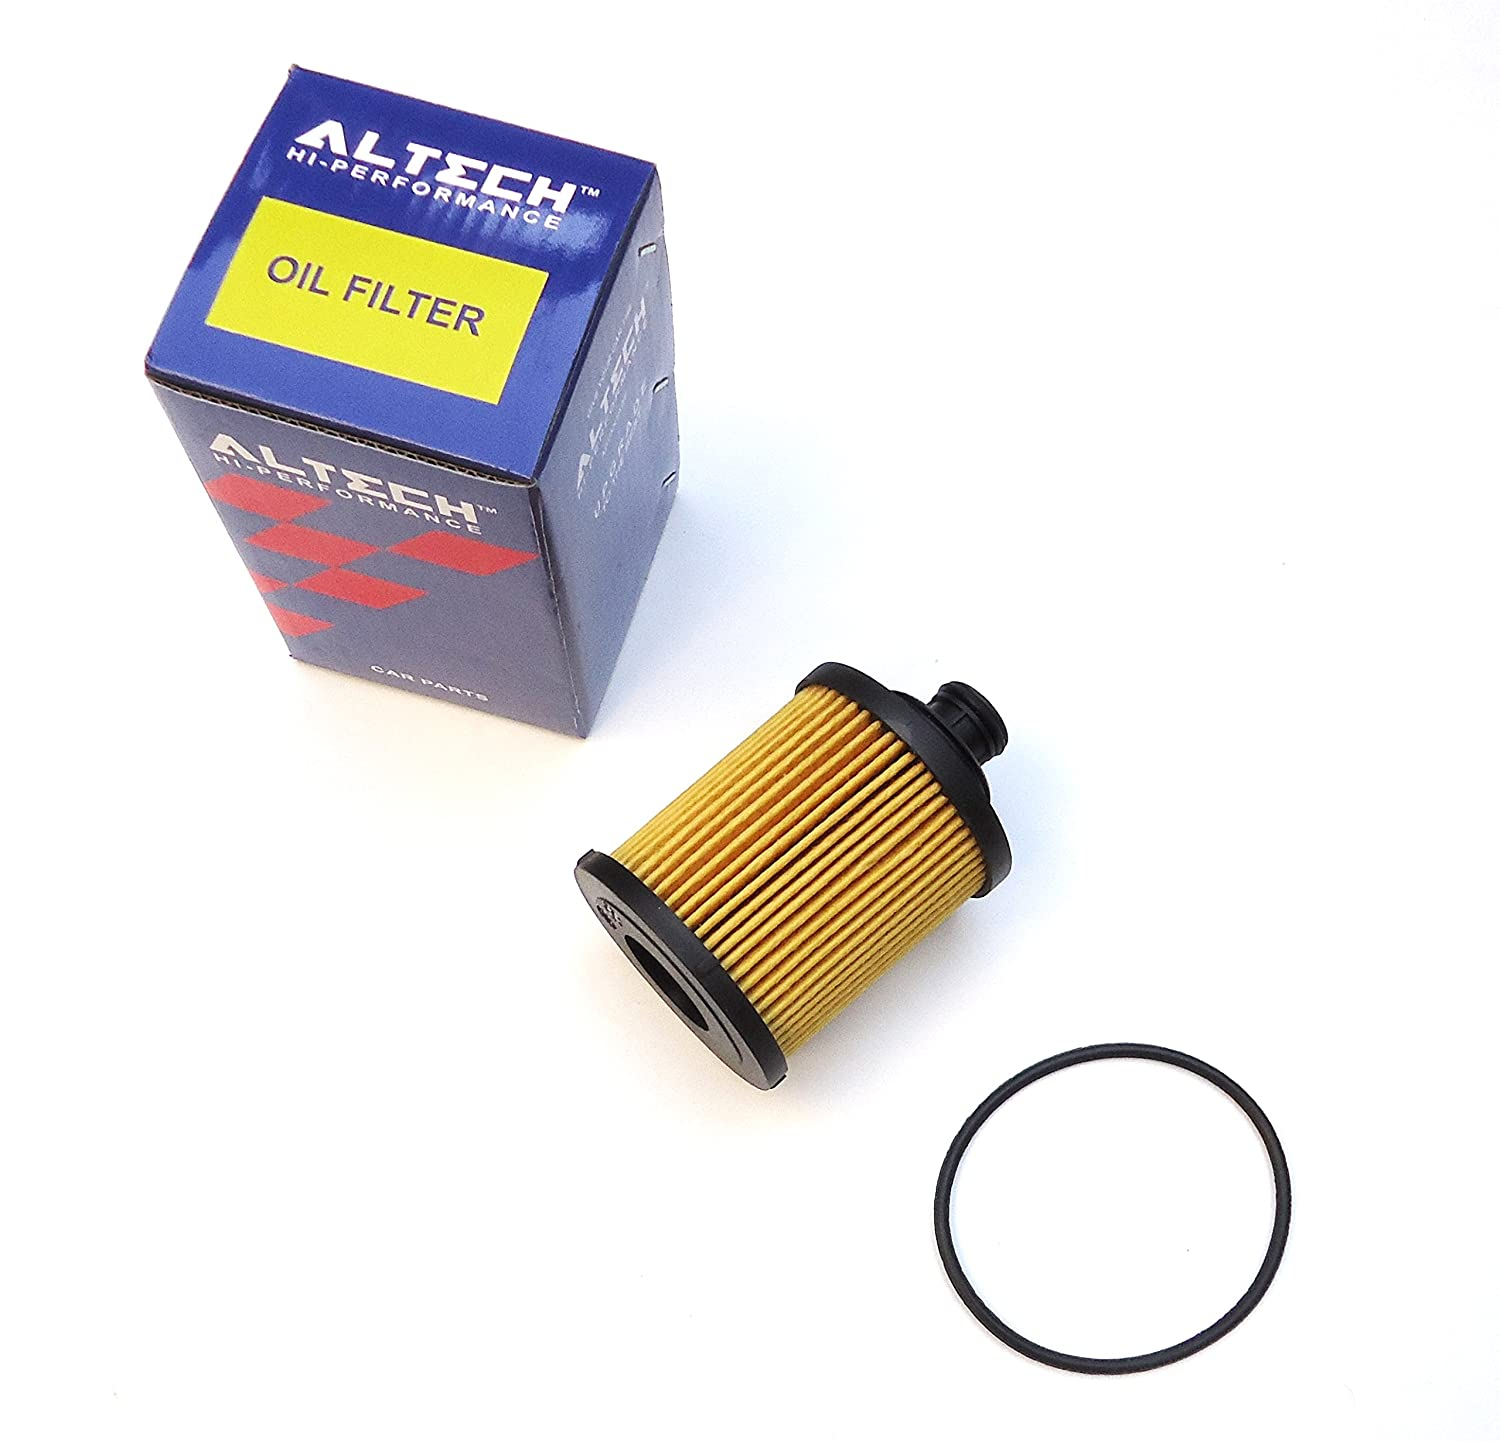 Oil Filters Buy Online At Best Prices In India 94 Honda Civic Fuel Filter Altech Hi Performance For Maruti Swift Diesel Dzire